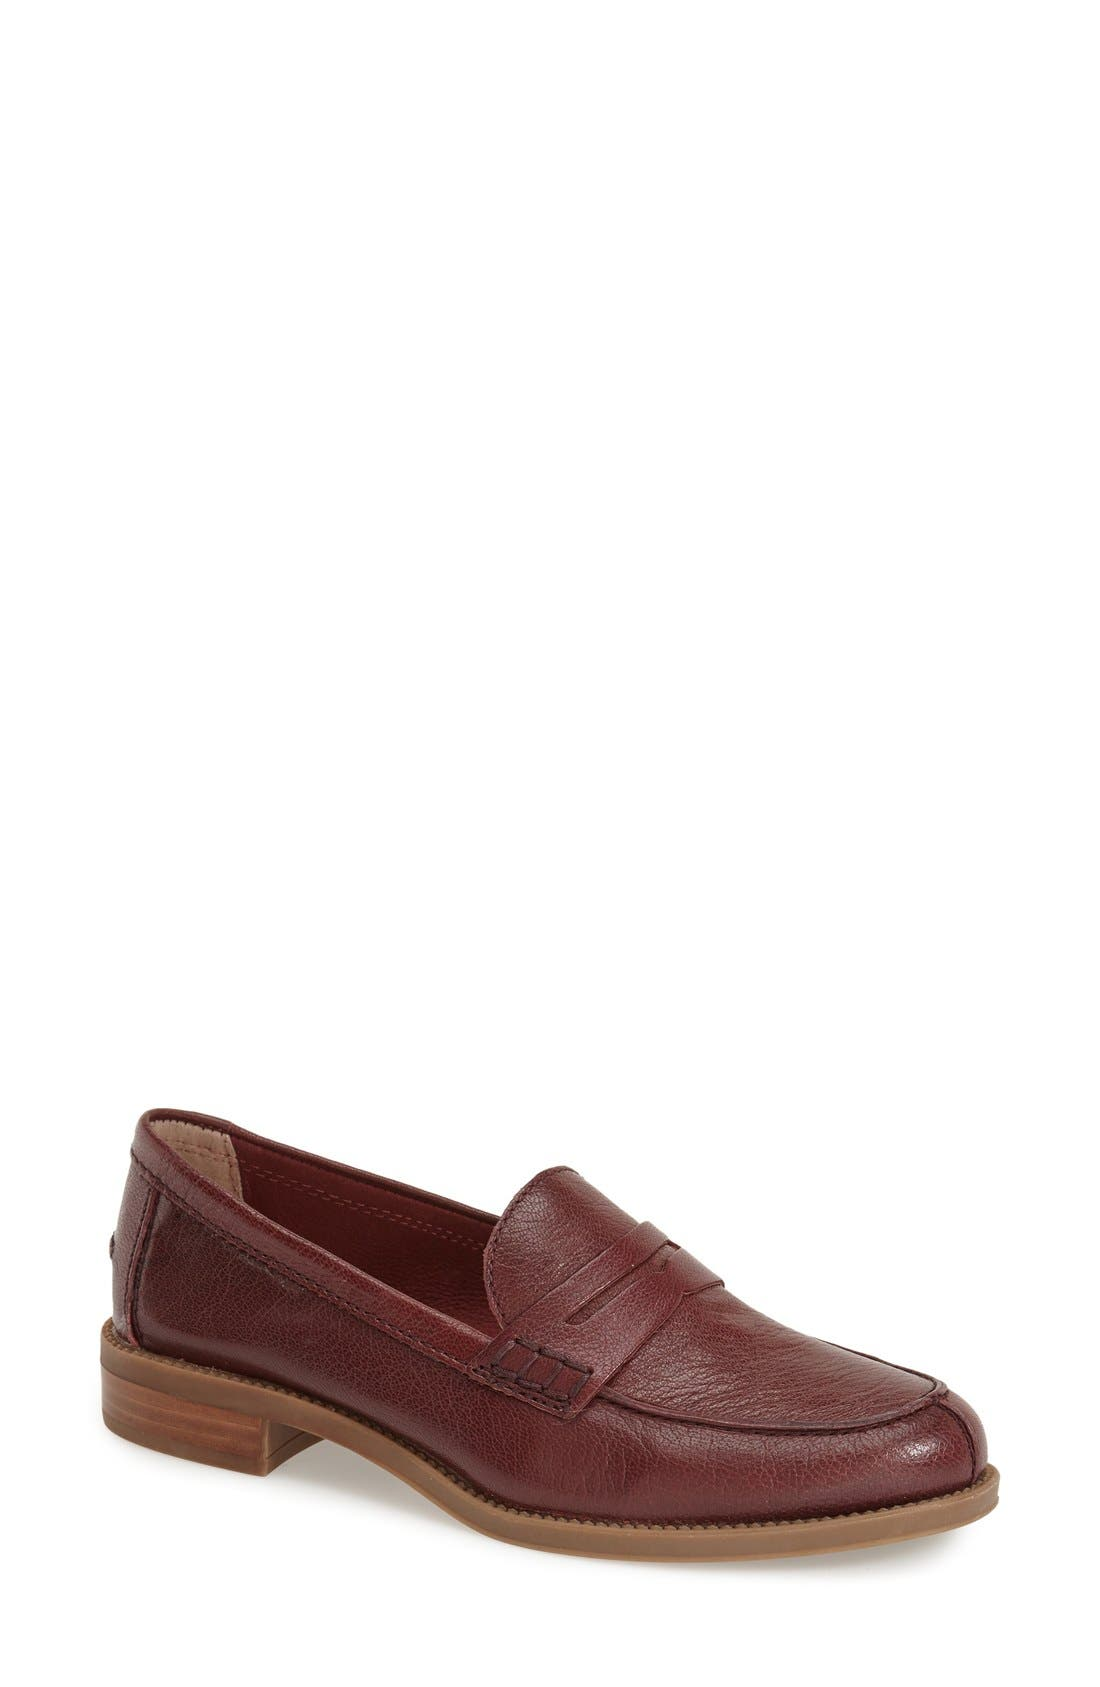 Alternate Image 1 Selected - Franco Sarto 'Tyce' Loafer (Women)